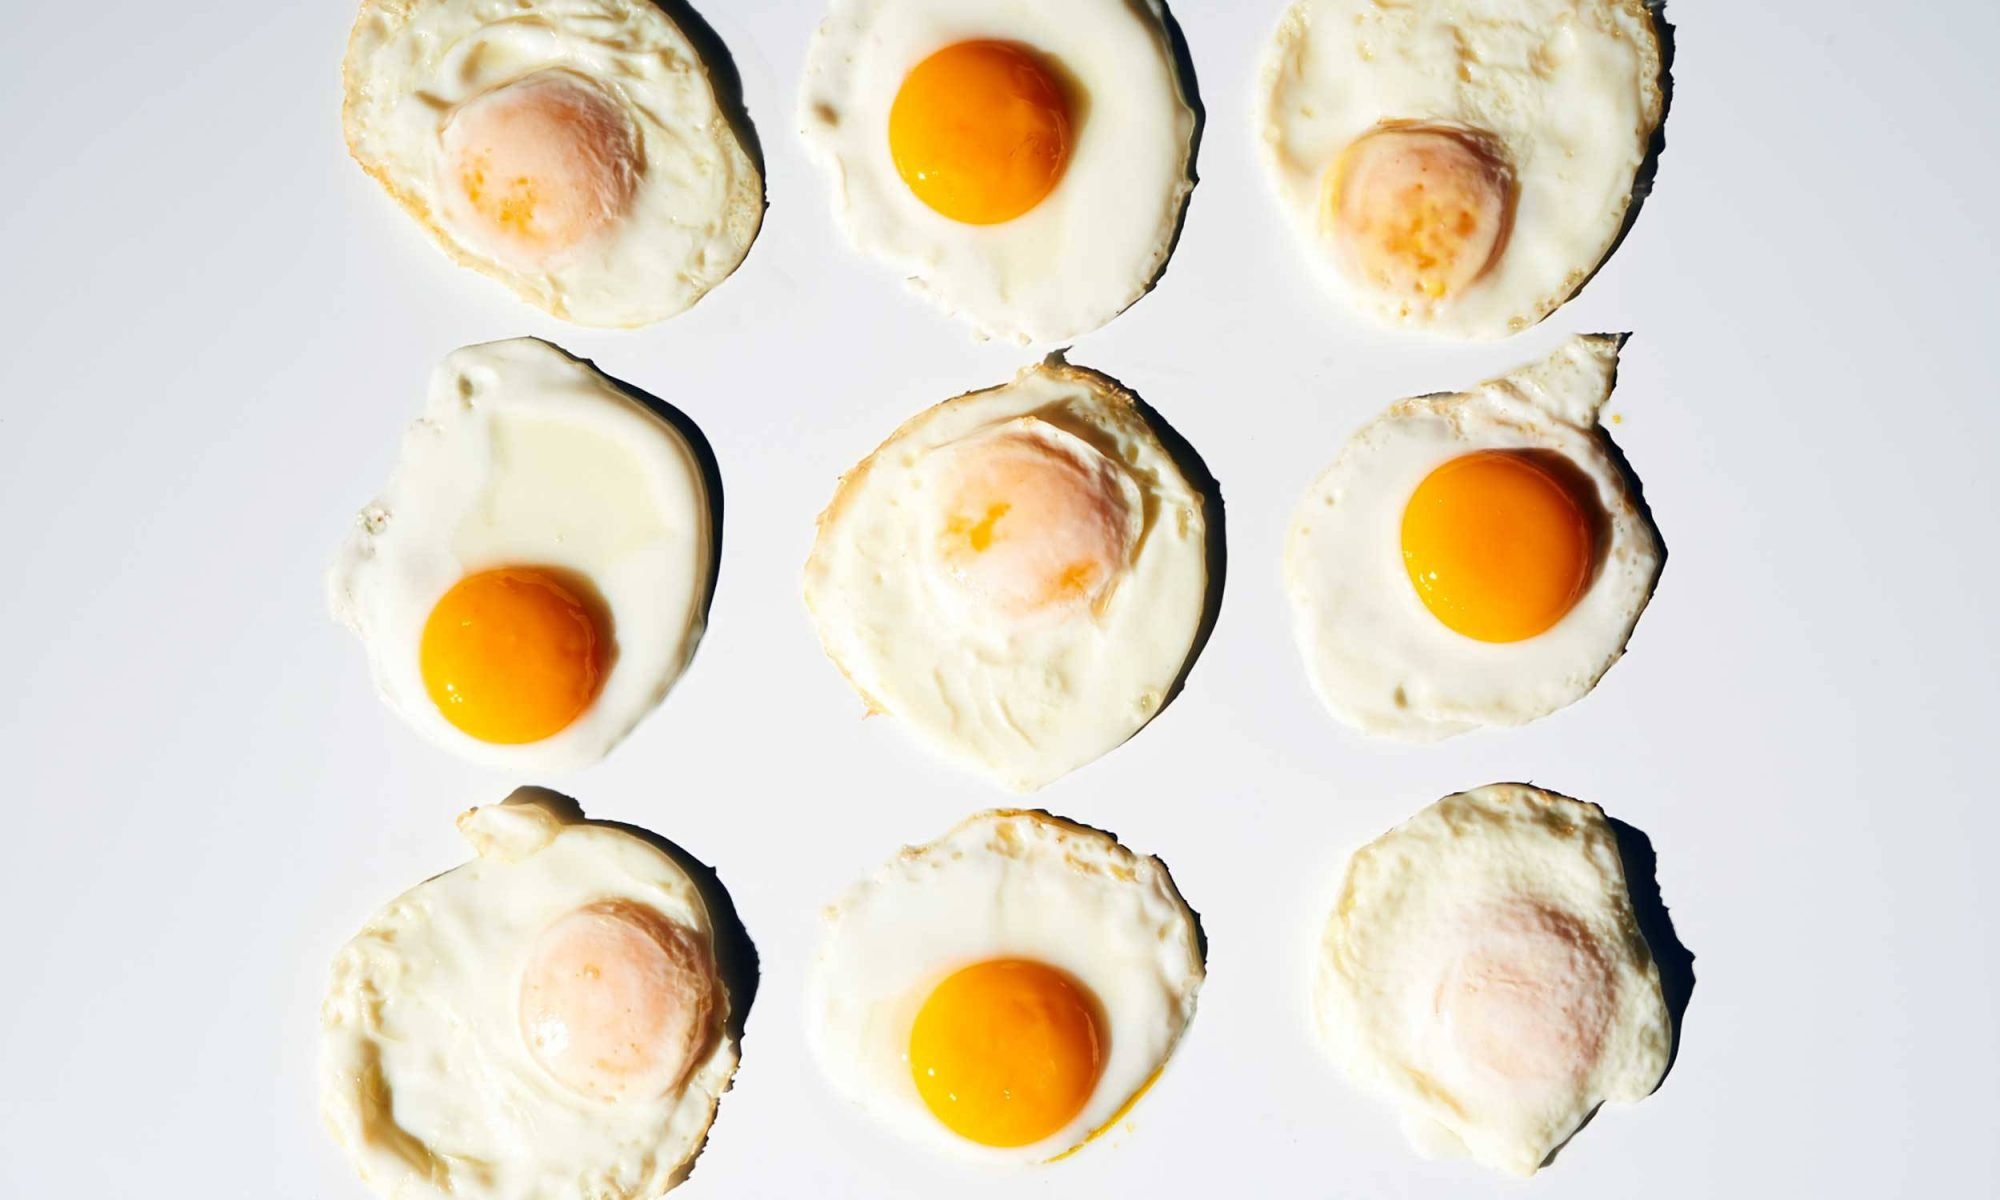 EC: How to Make Sunny-Side Up Eggs for a Crowd